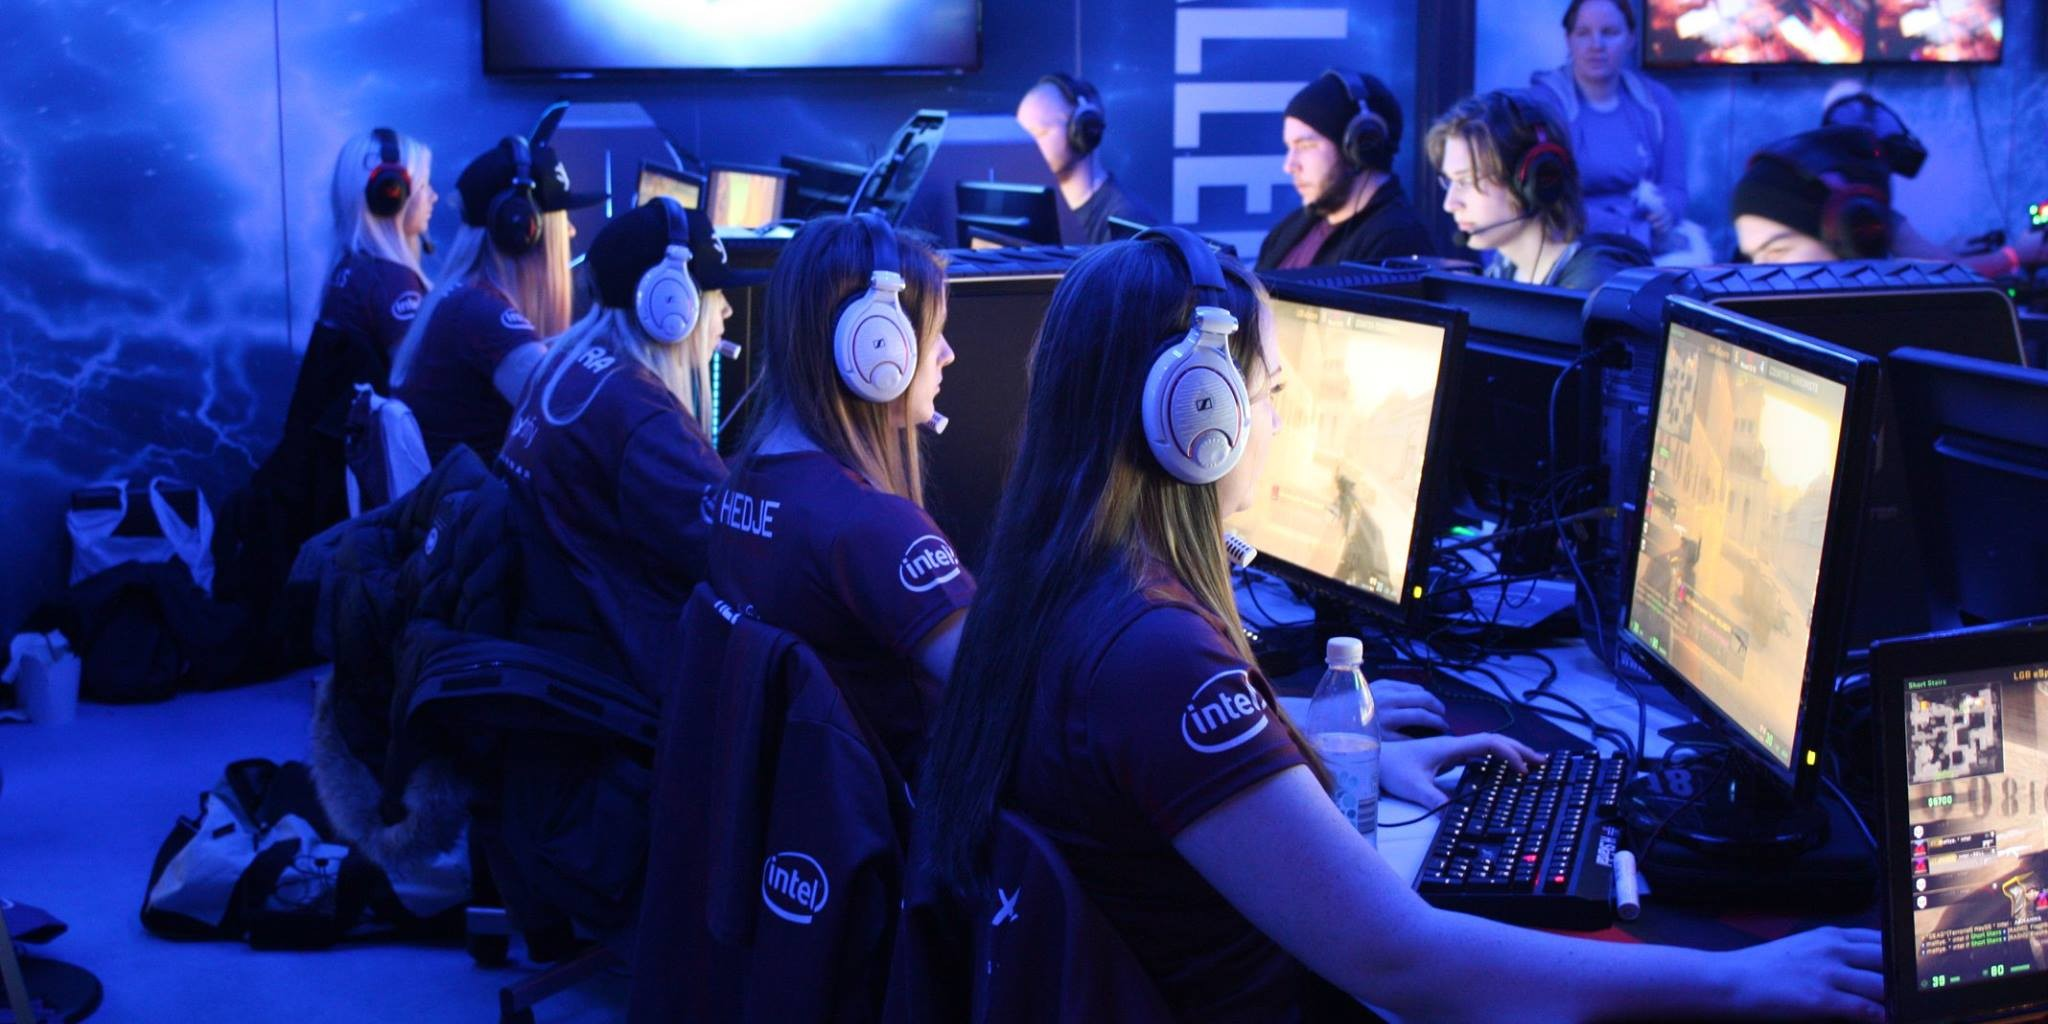 E-sport, a sport with video games